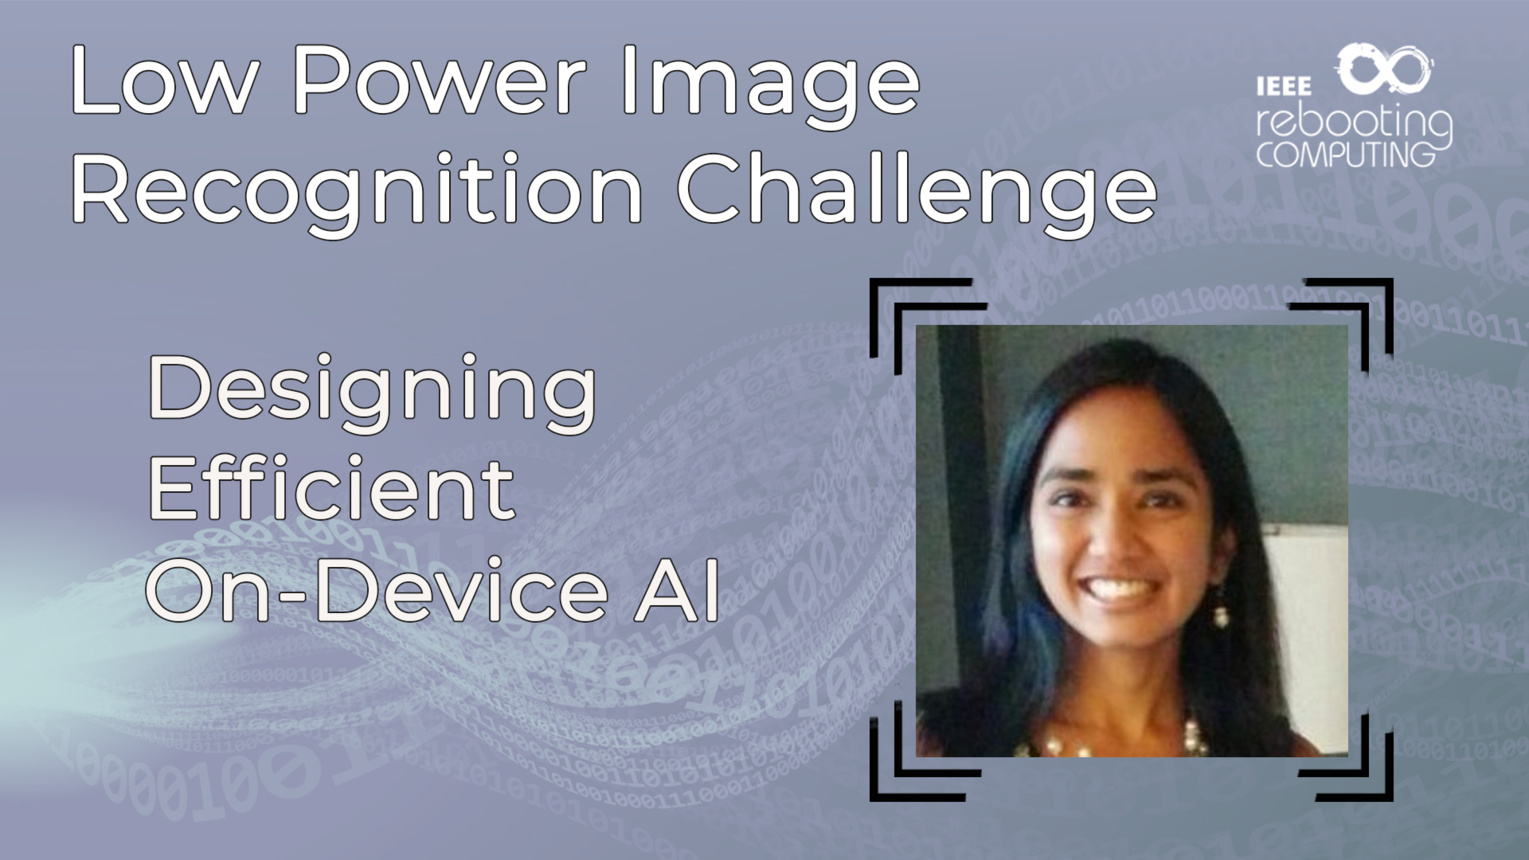 Designing Efficient On-Device AI - Aakanksha Chowdhery - LPIRC 2019